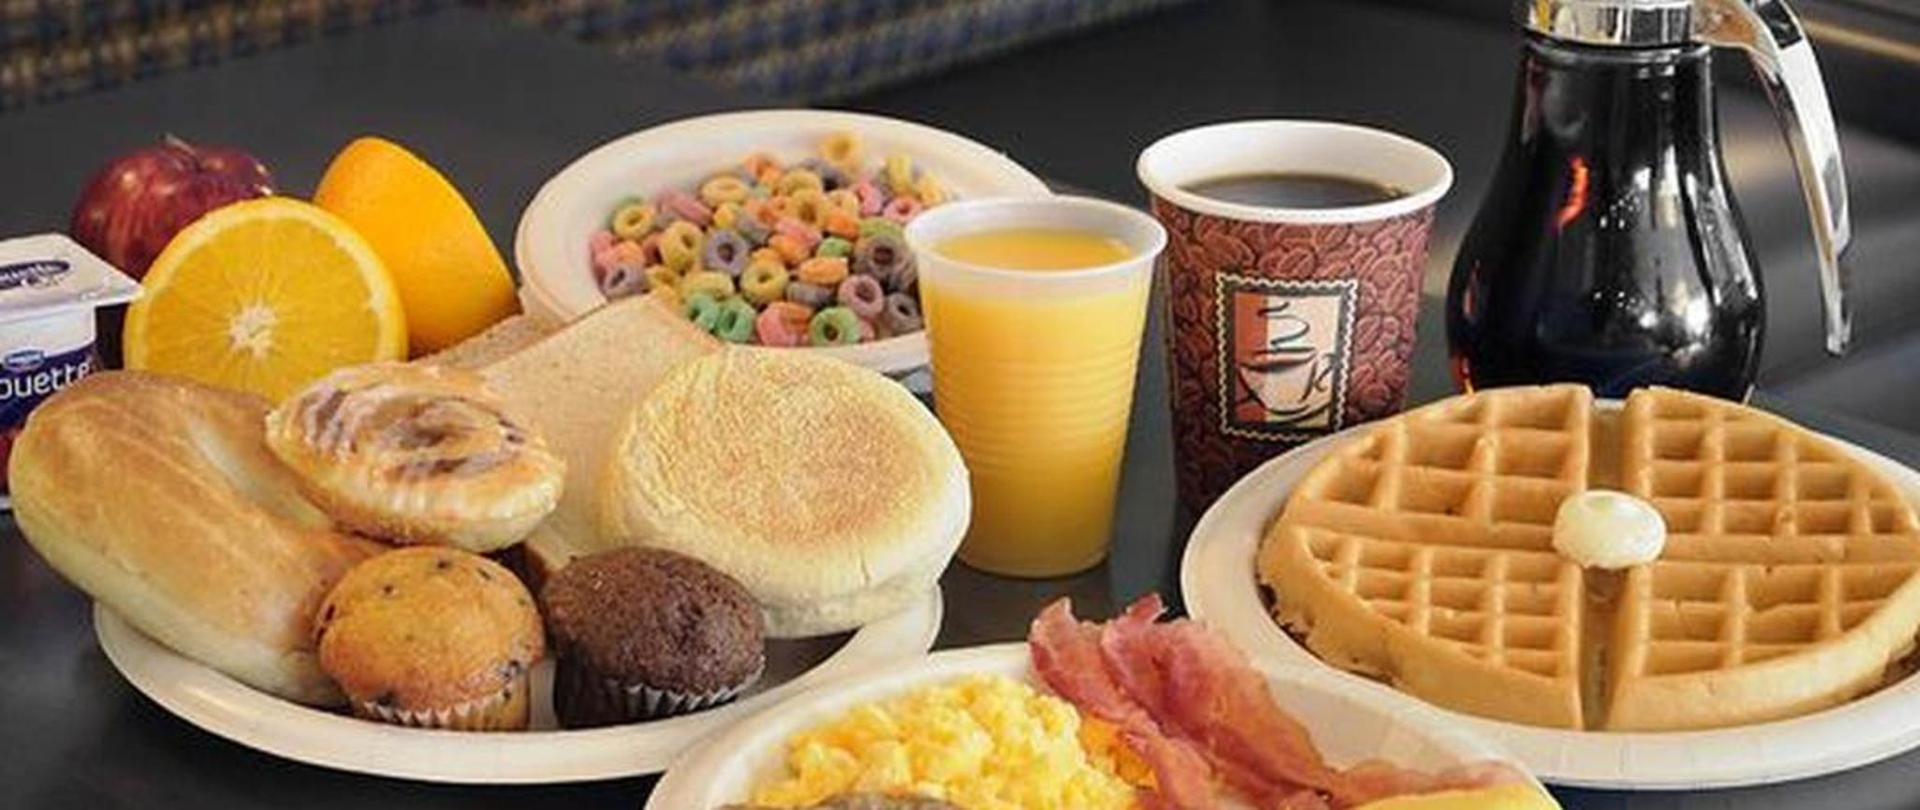 full_hot_breakfast_available_daily_.jpg.1170x493_default.jpg